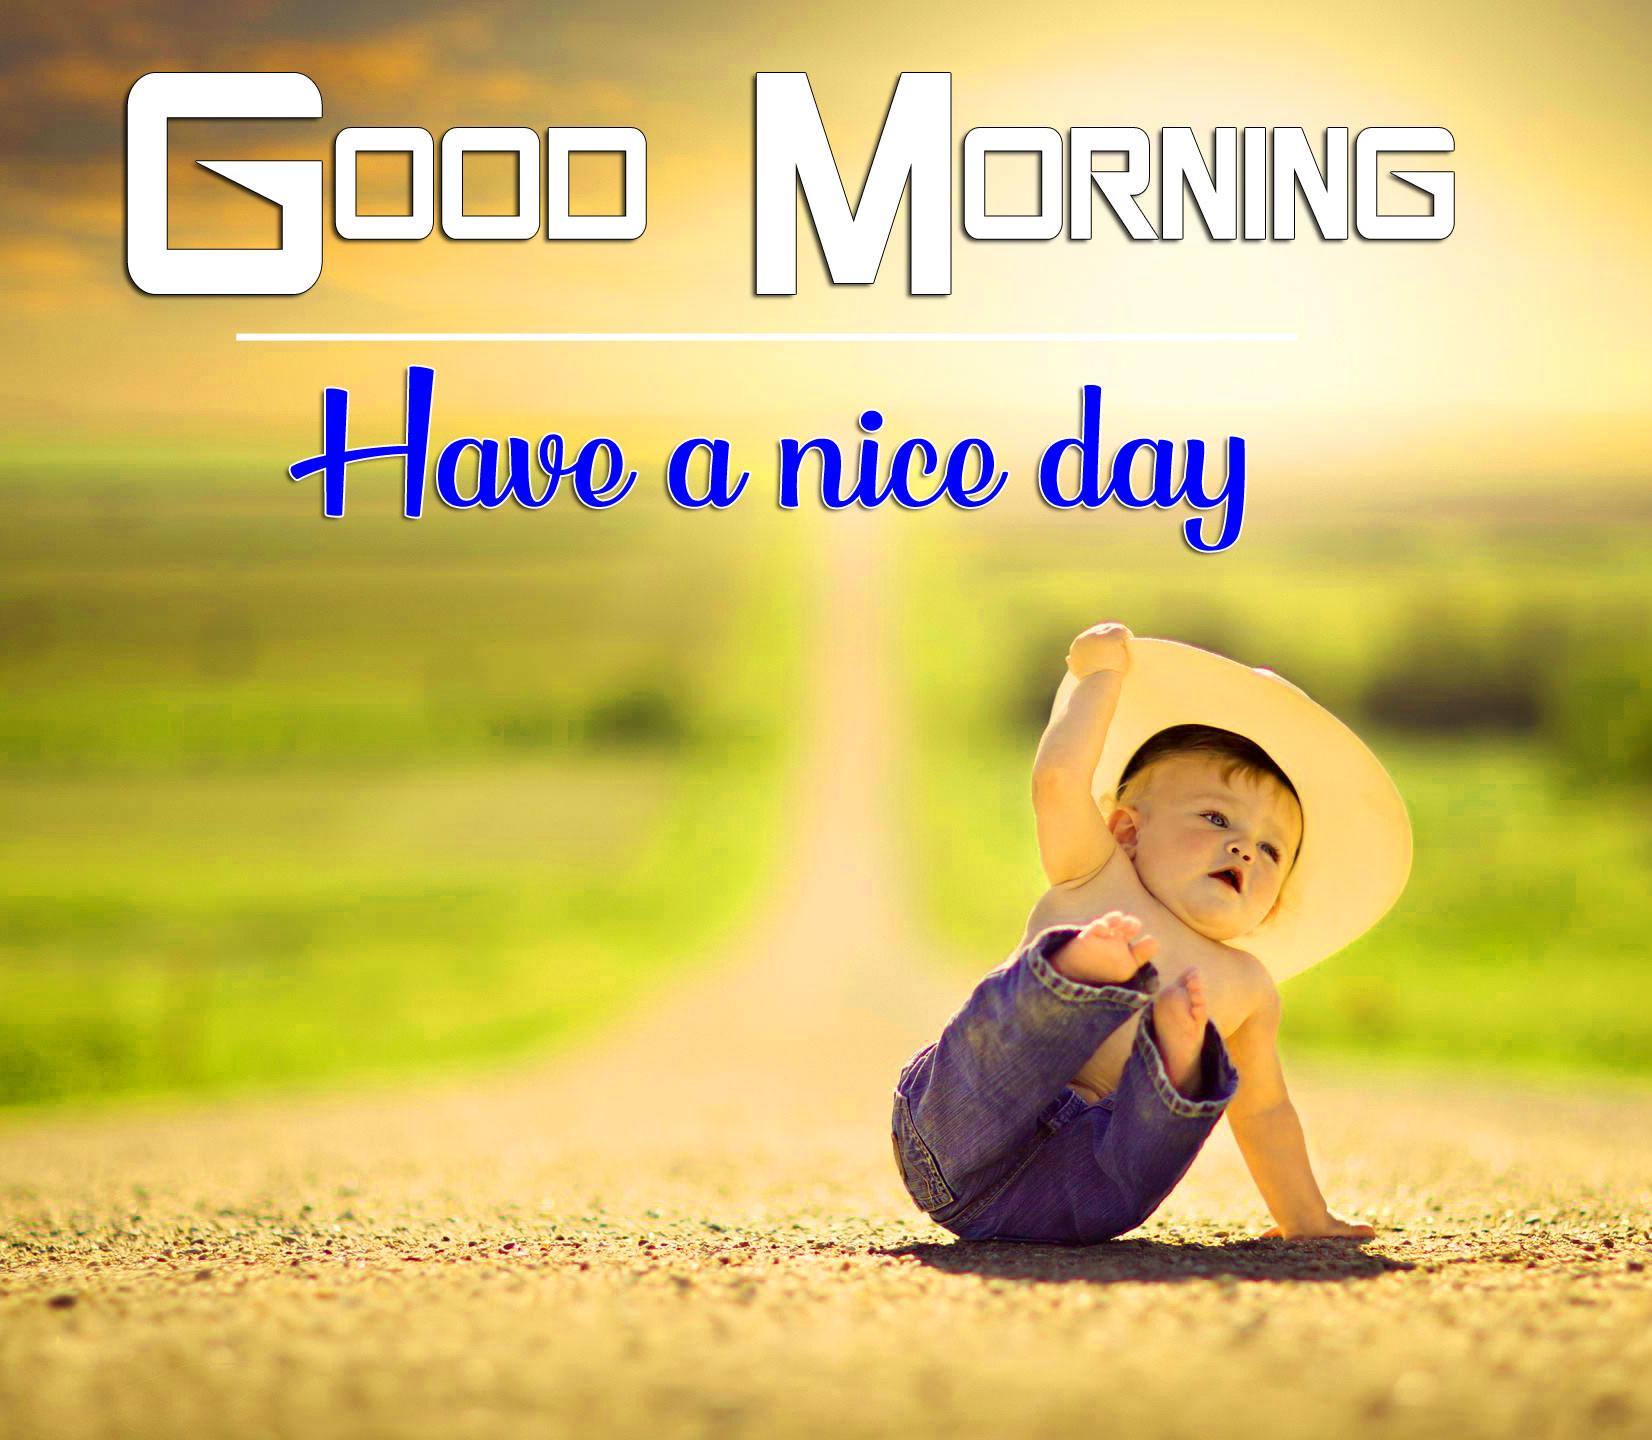 Good Morning Wishes Pics 2021